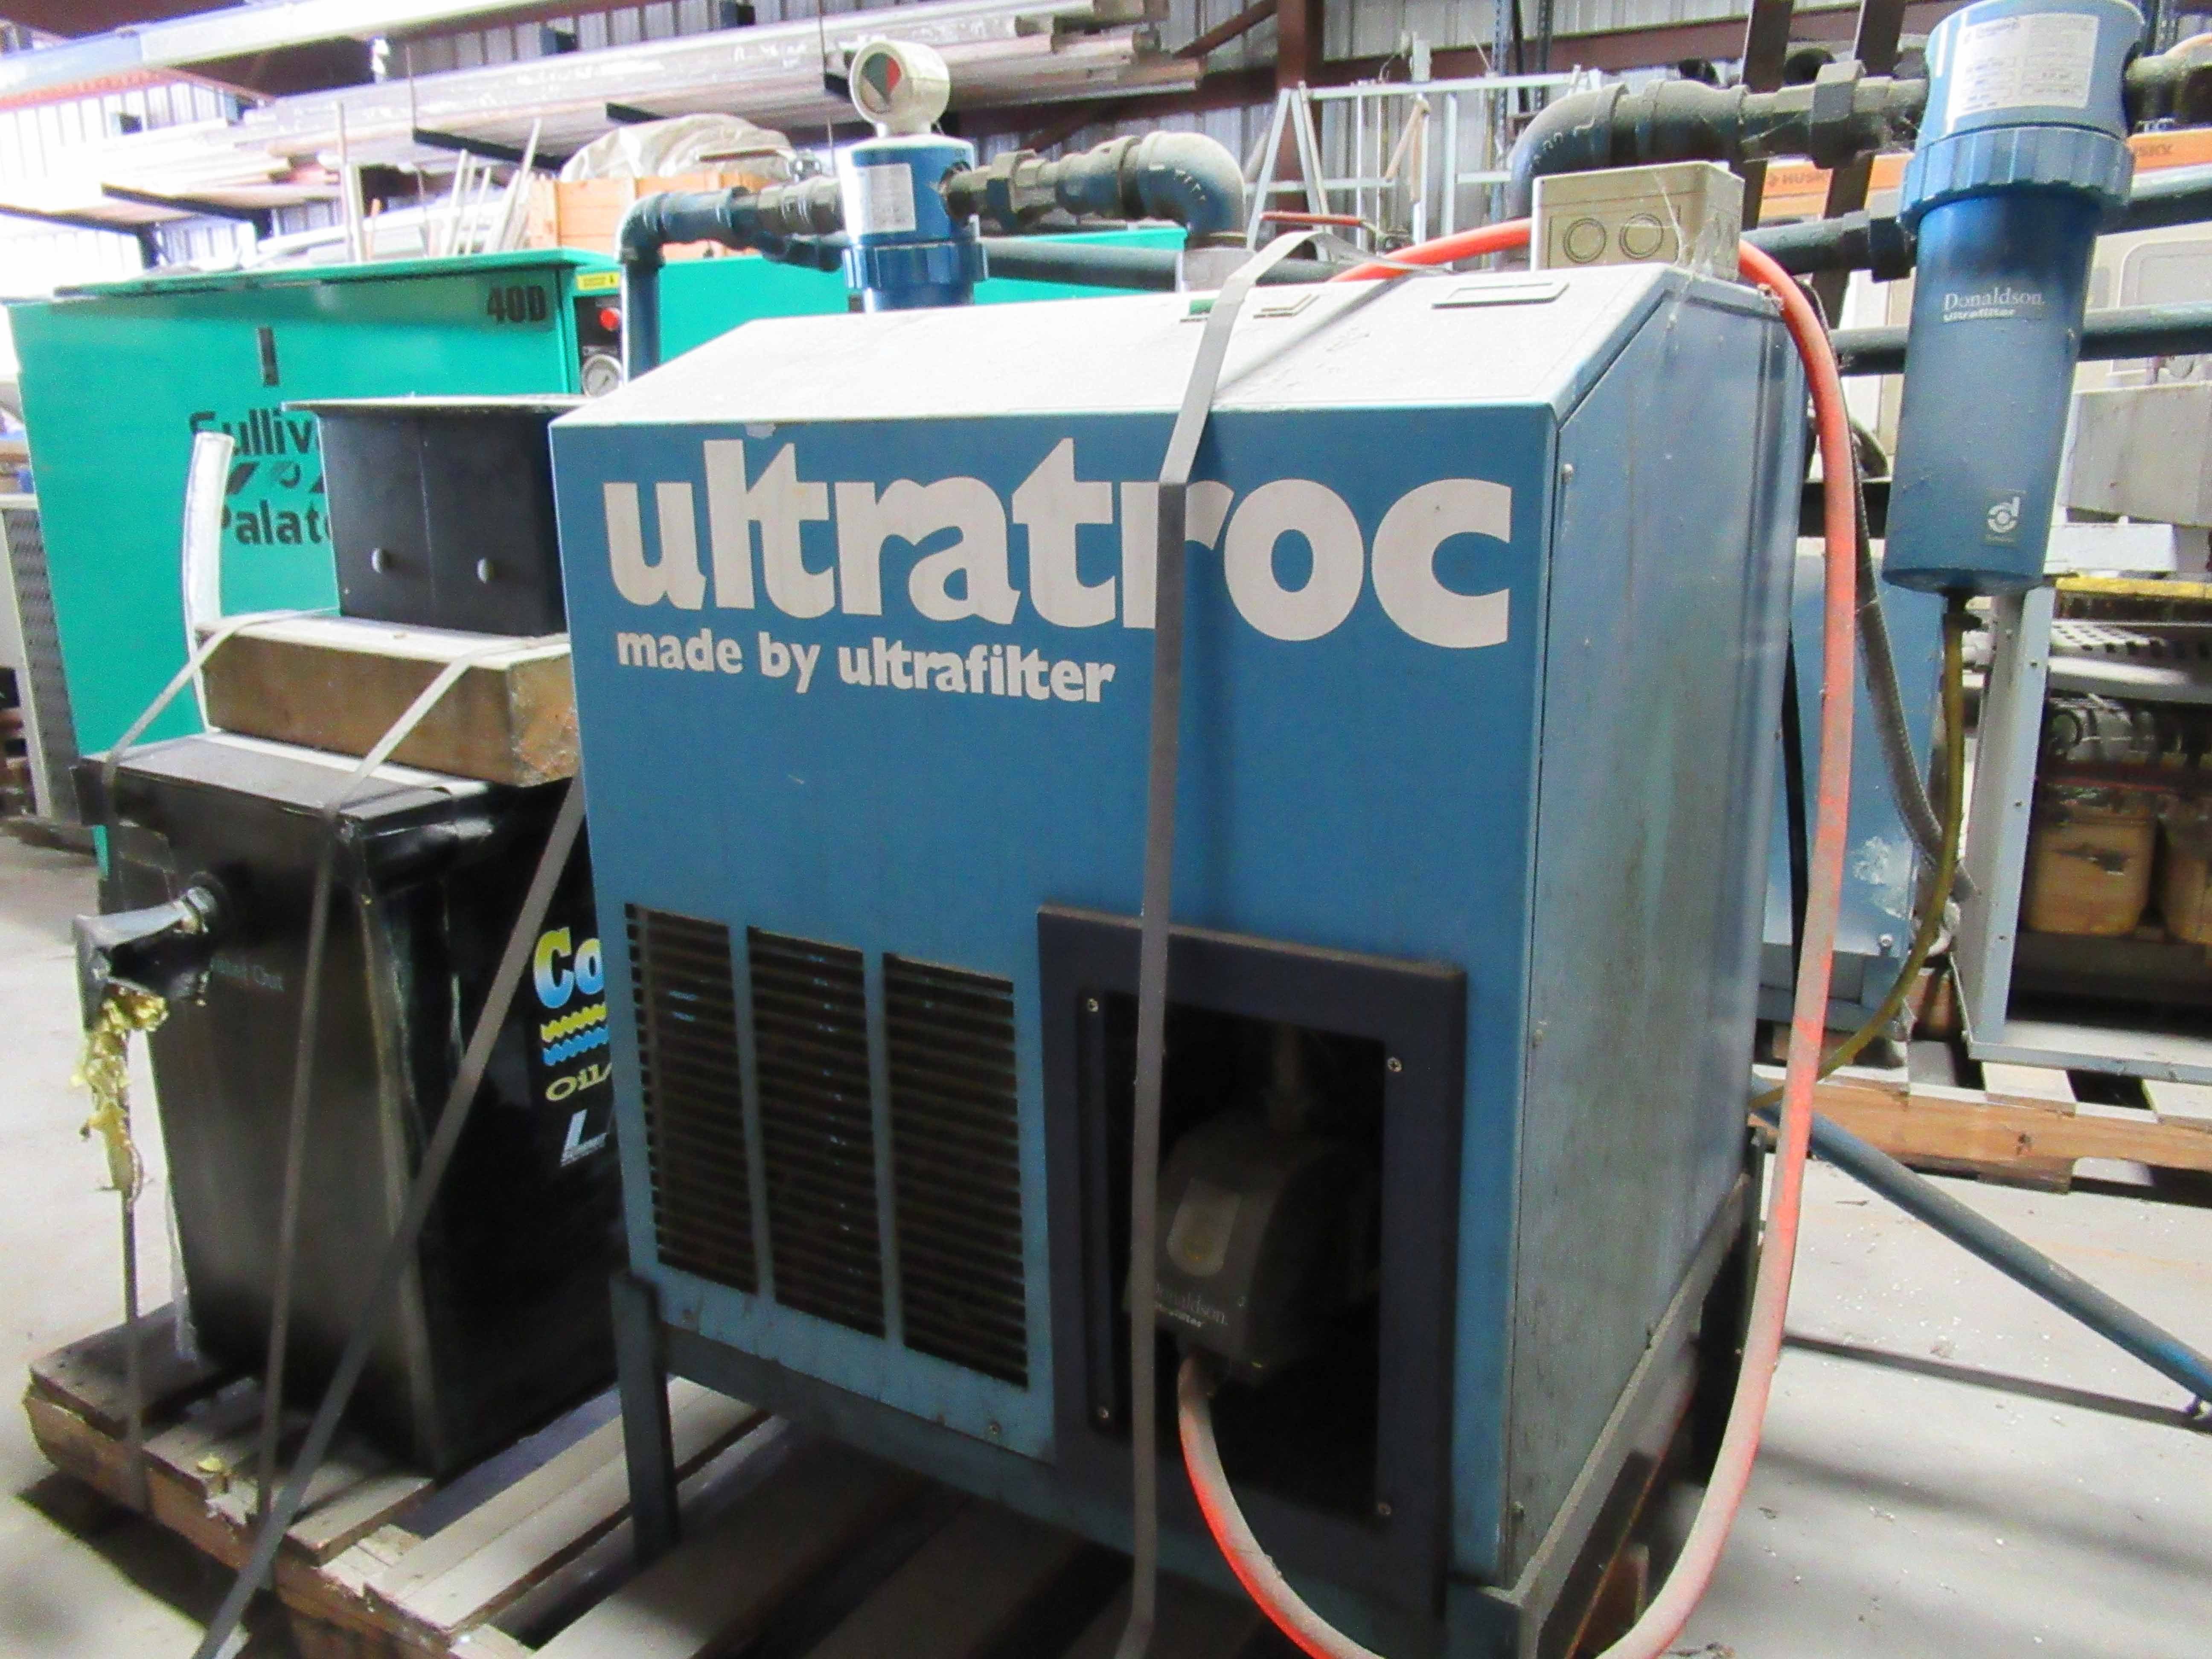 Lot 8 - ULTRAFILTER/ULTRATROC AIR DRYER MDL. SD0375-60, Type 446, w/condenser unit, S/N 003/13144/19. Seller